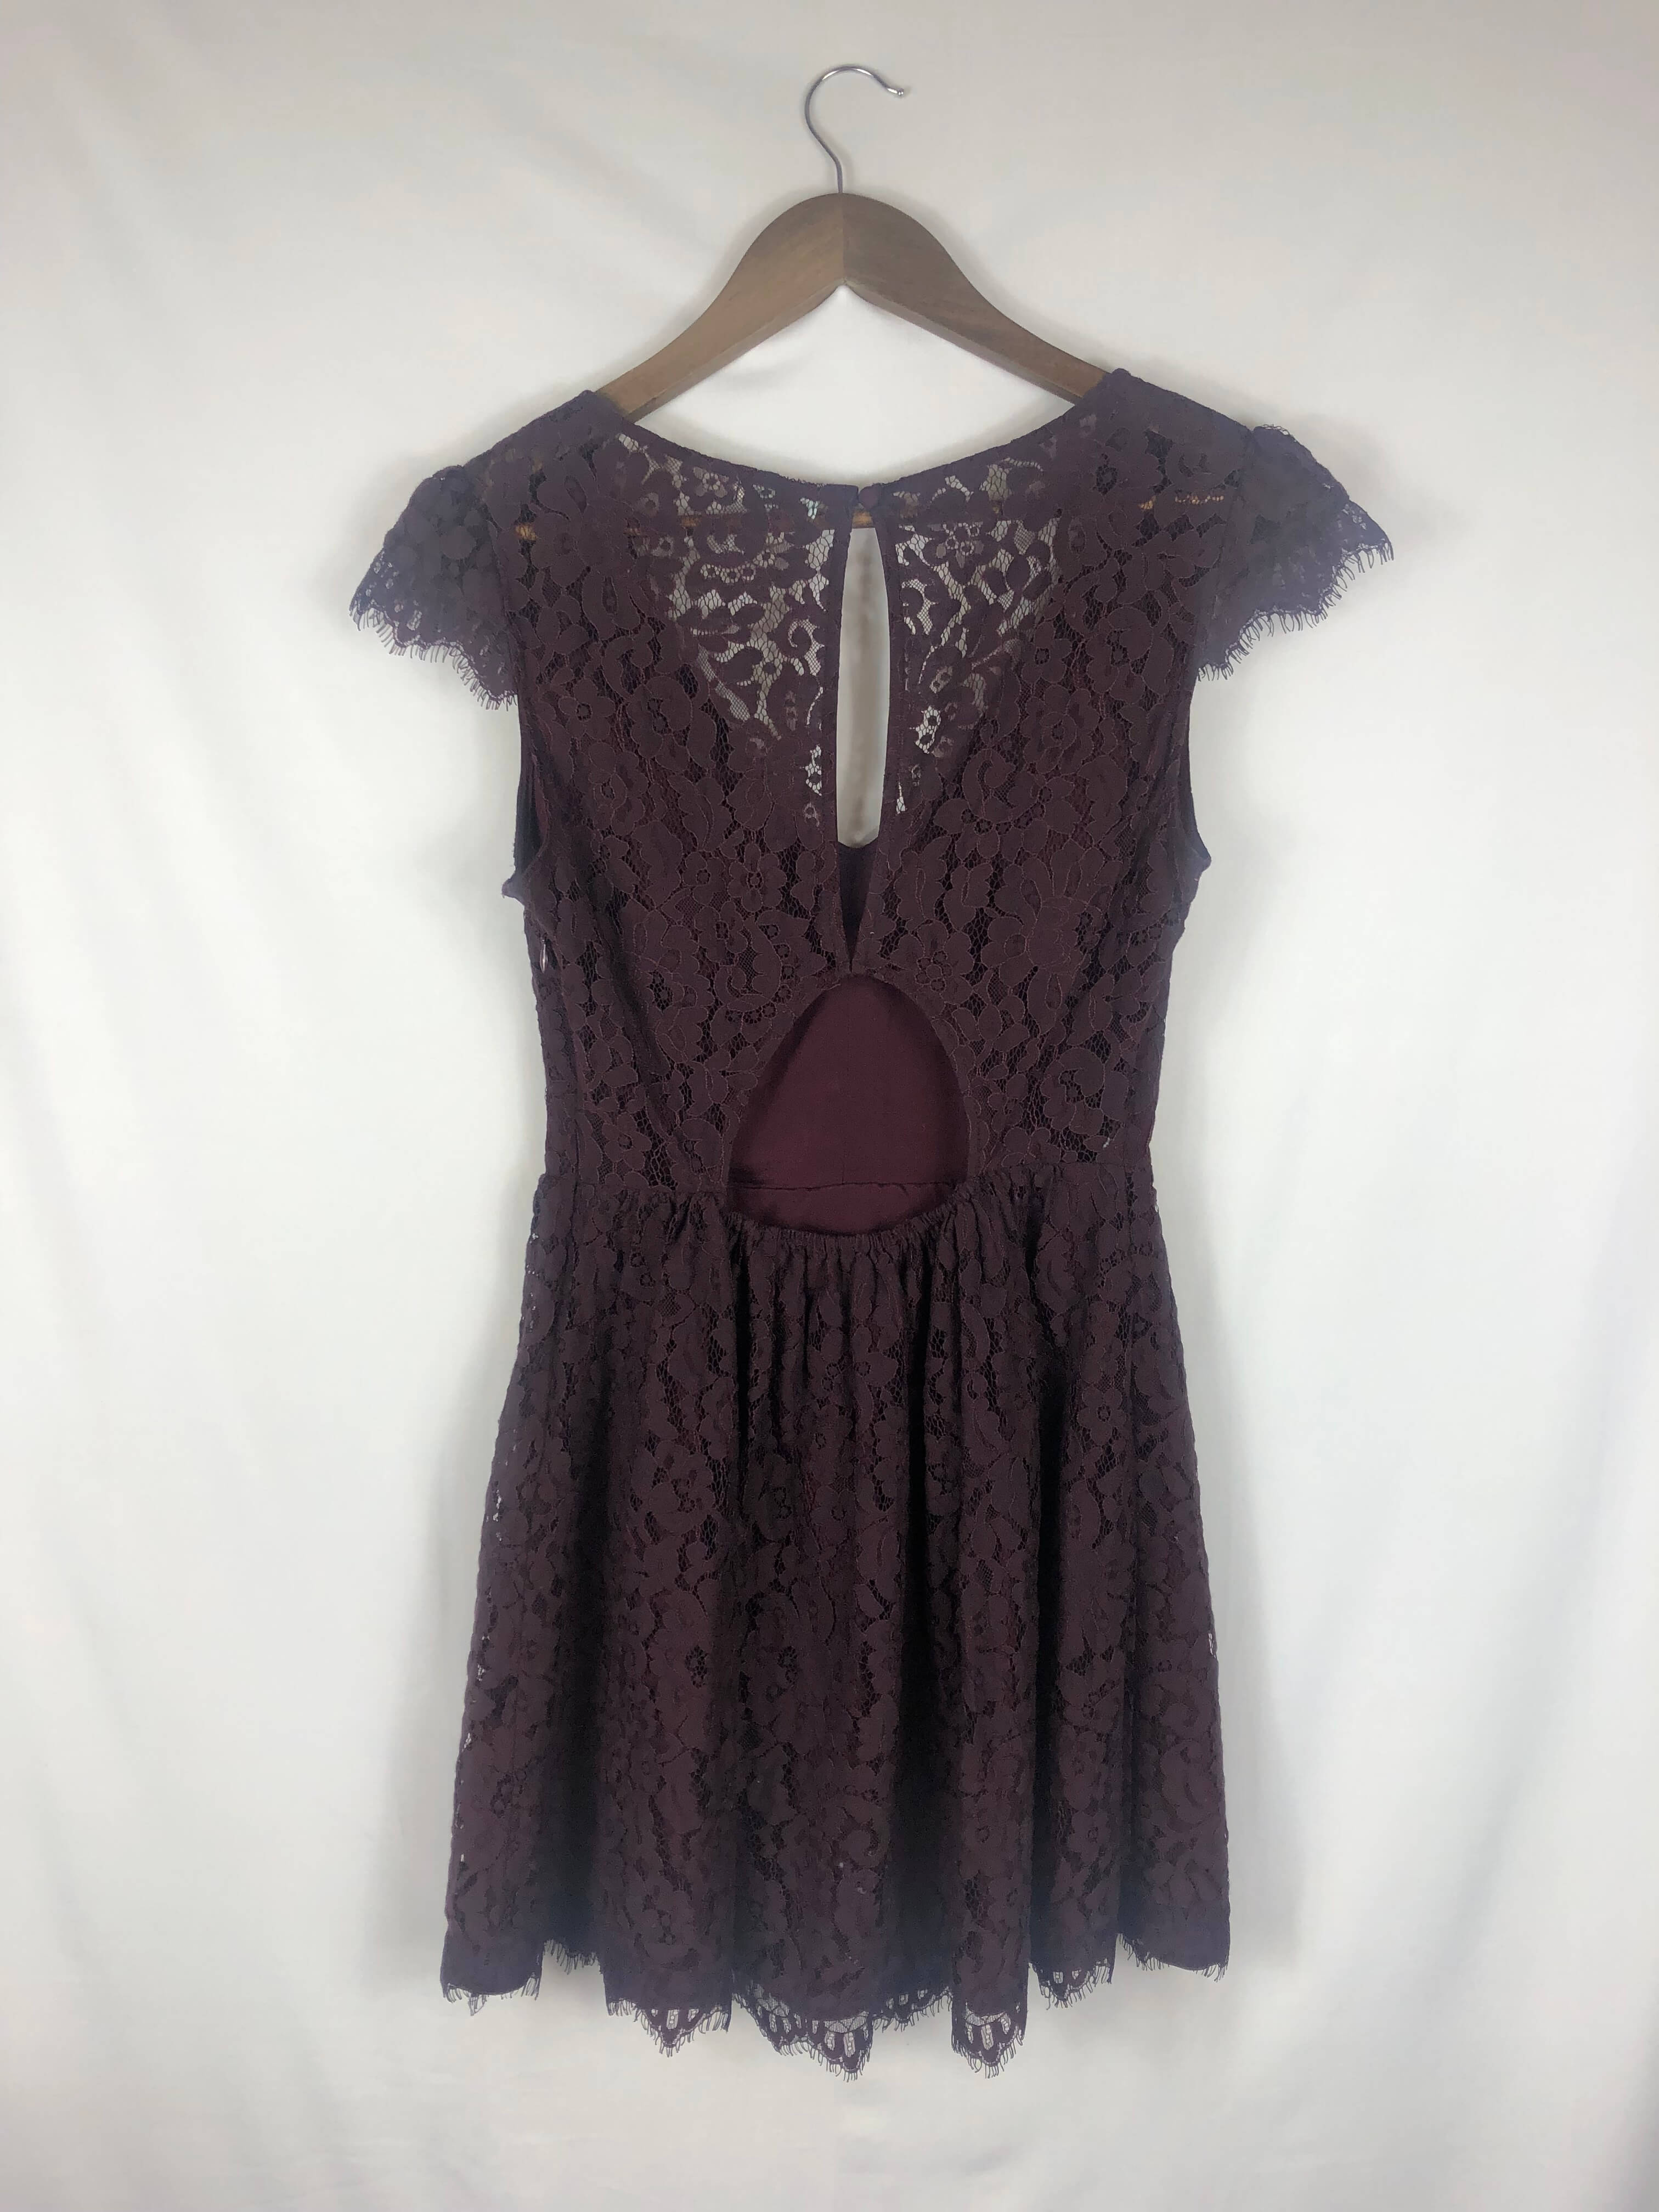 Allover Lace Maroon Dress- Small